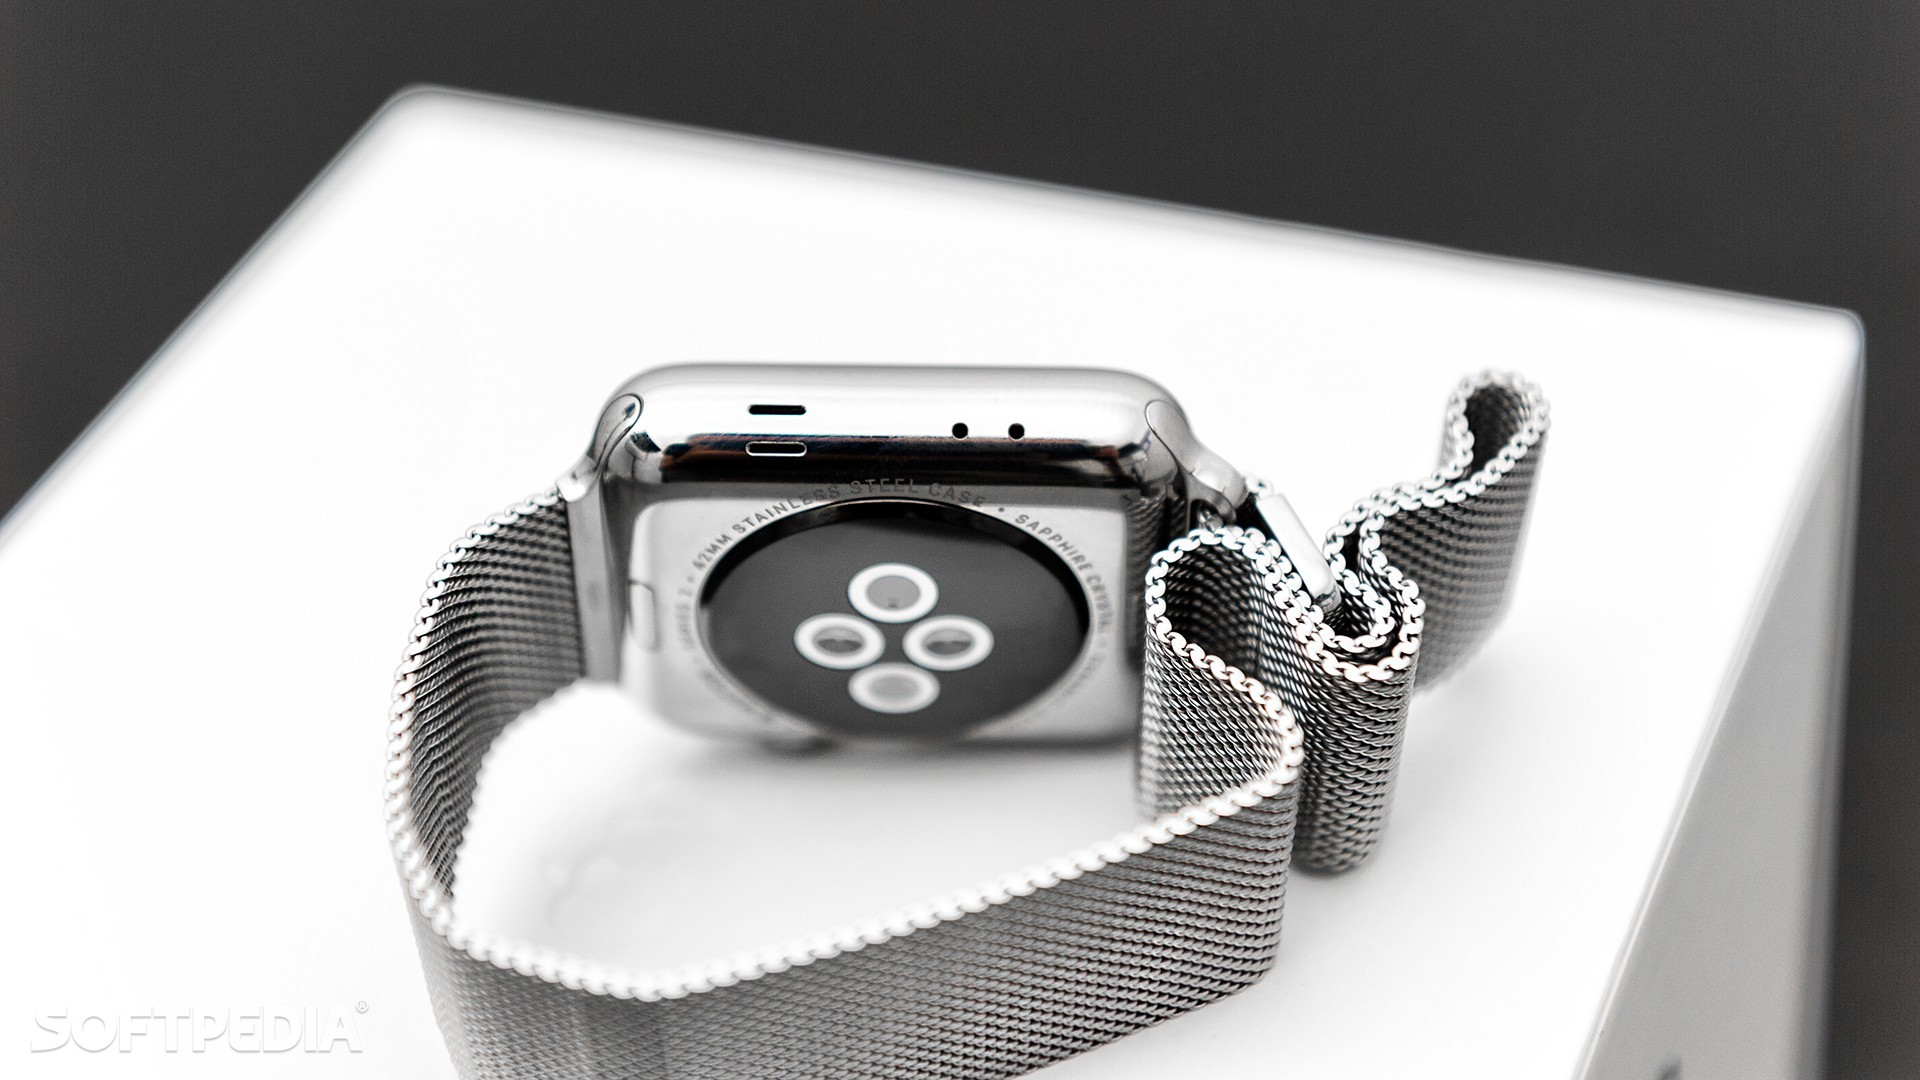 MicroLED Display Could Be Coming to the 2020 Apple Watch